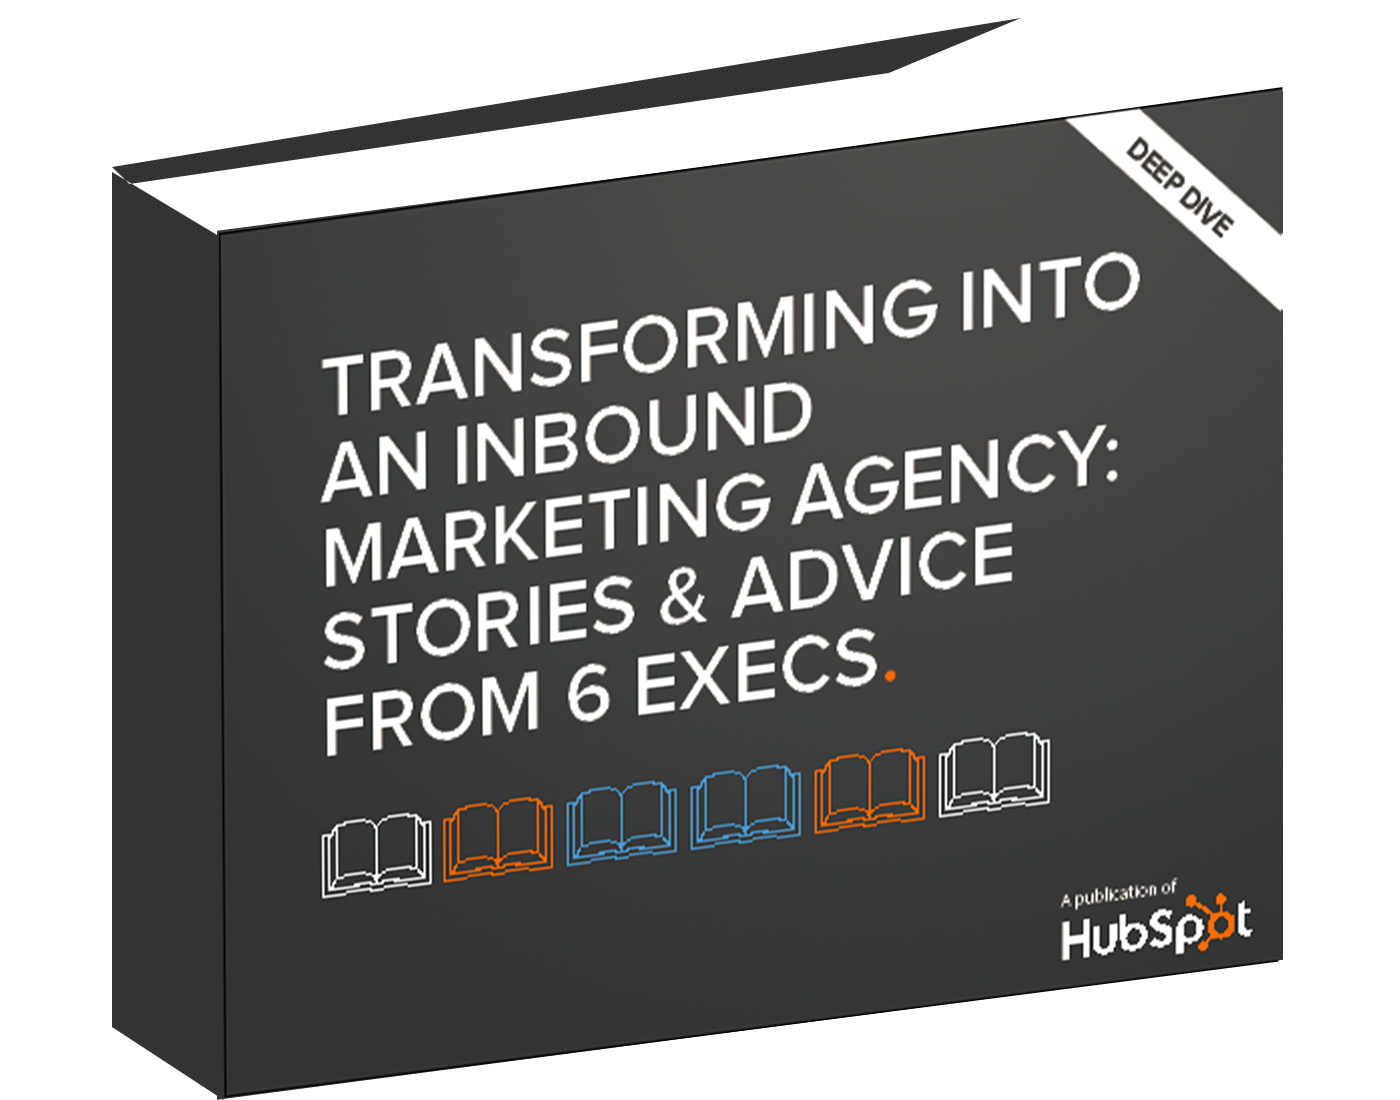 Download the Agency Guide Now!